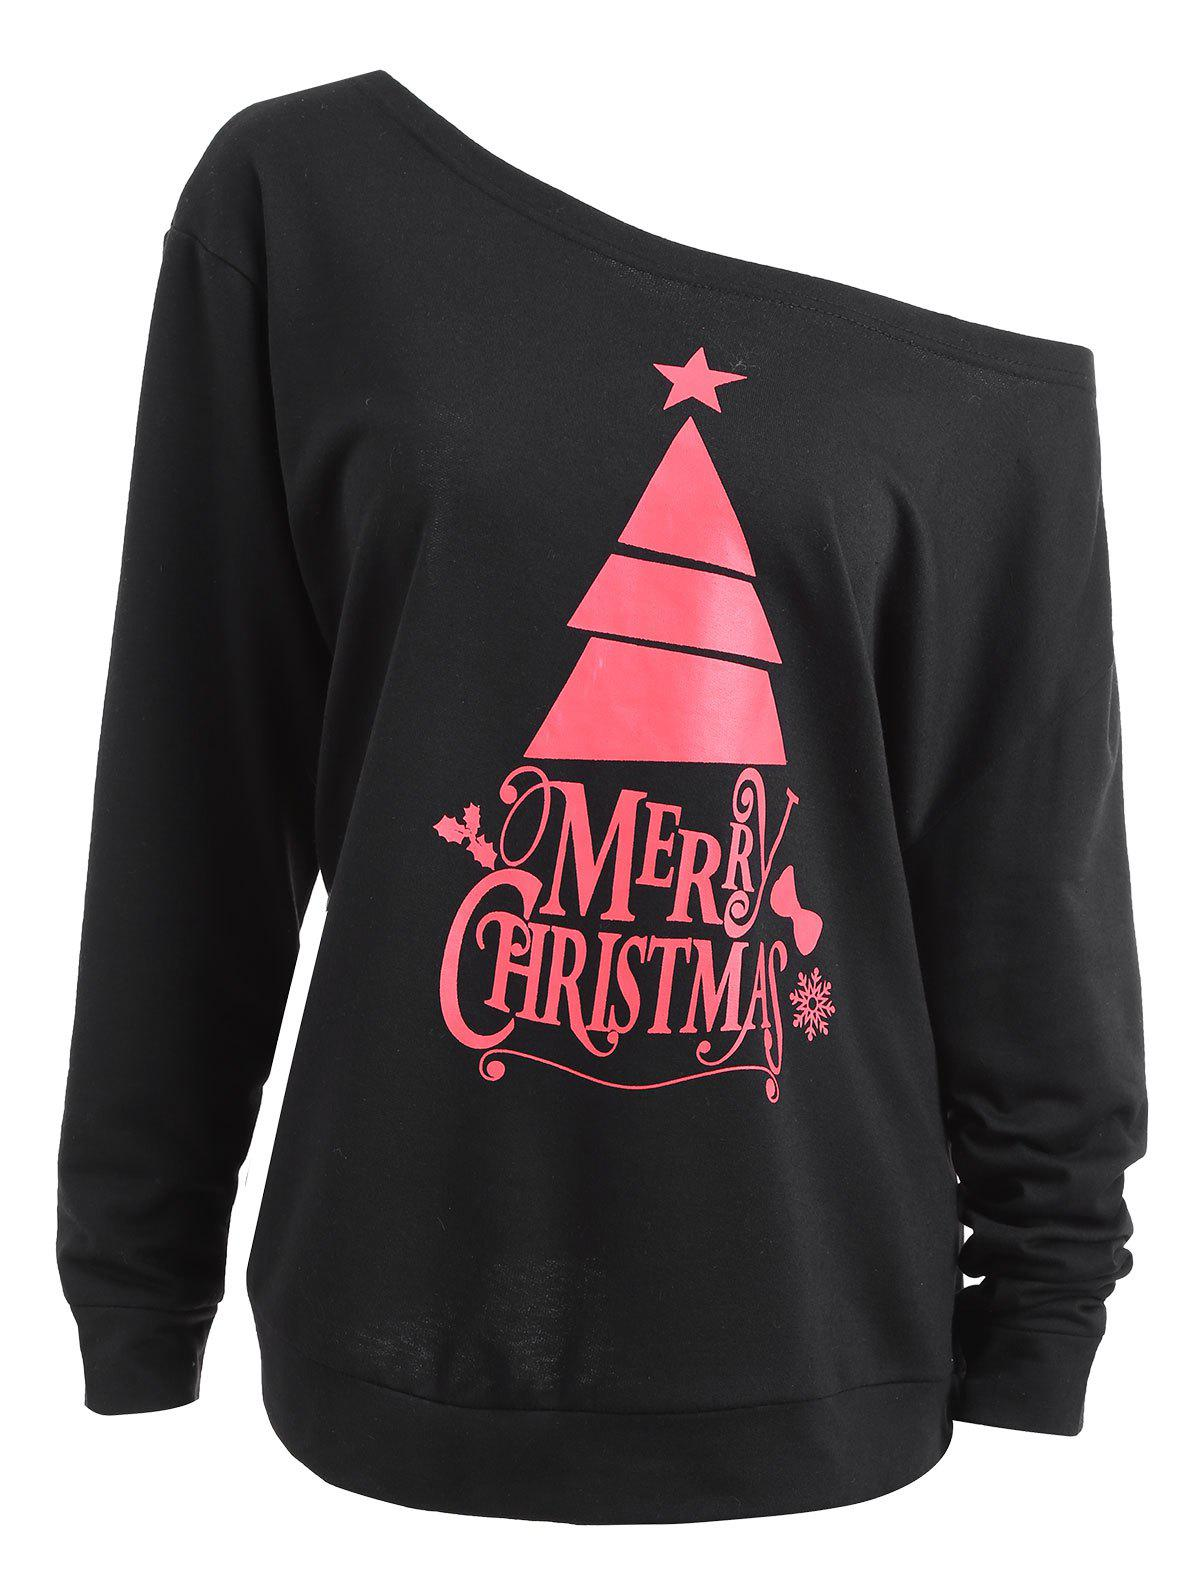 Plus Size Cute Christmas Tree Skew Neck Sweatshirt plus size christmas reindeer skew collar sweatshirt